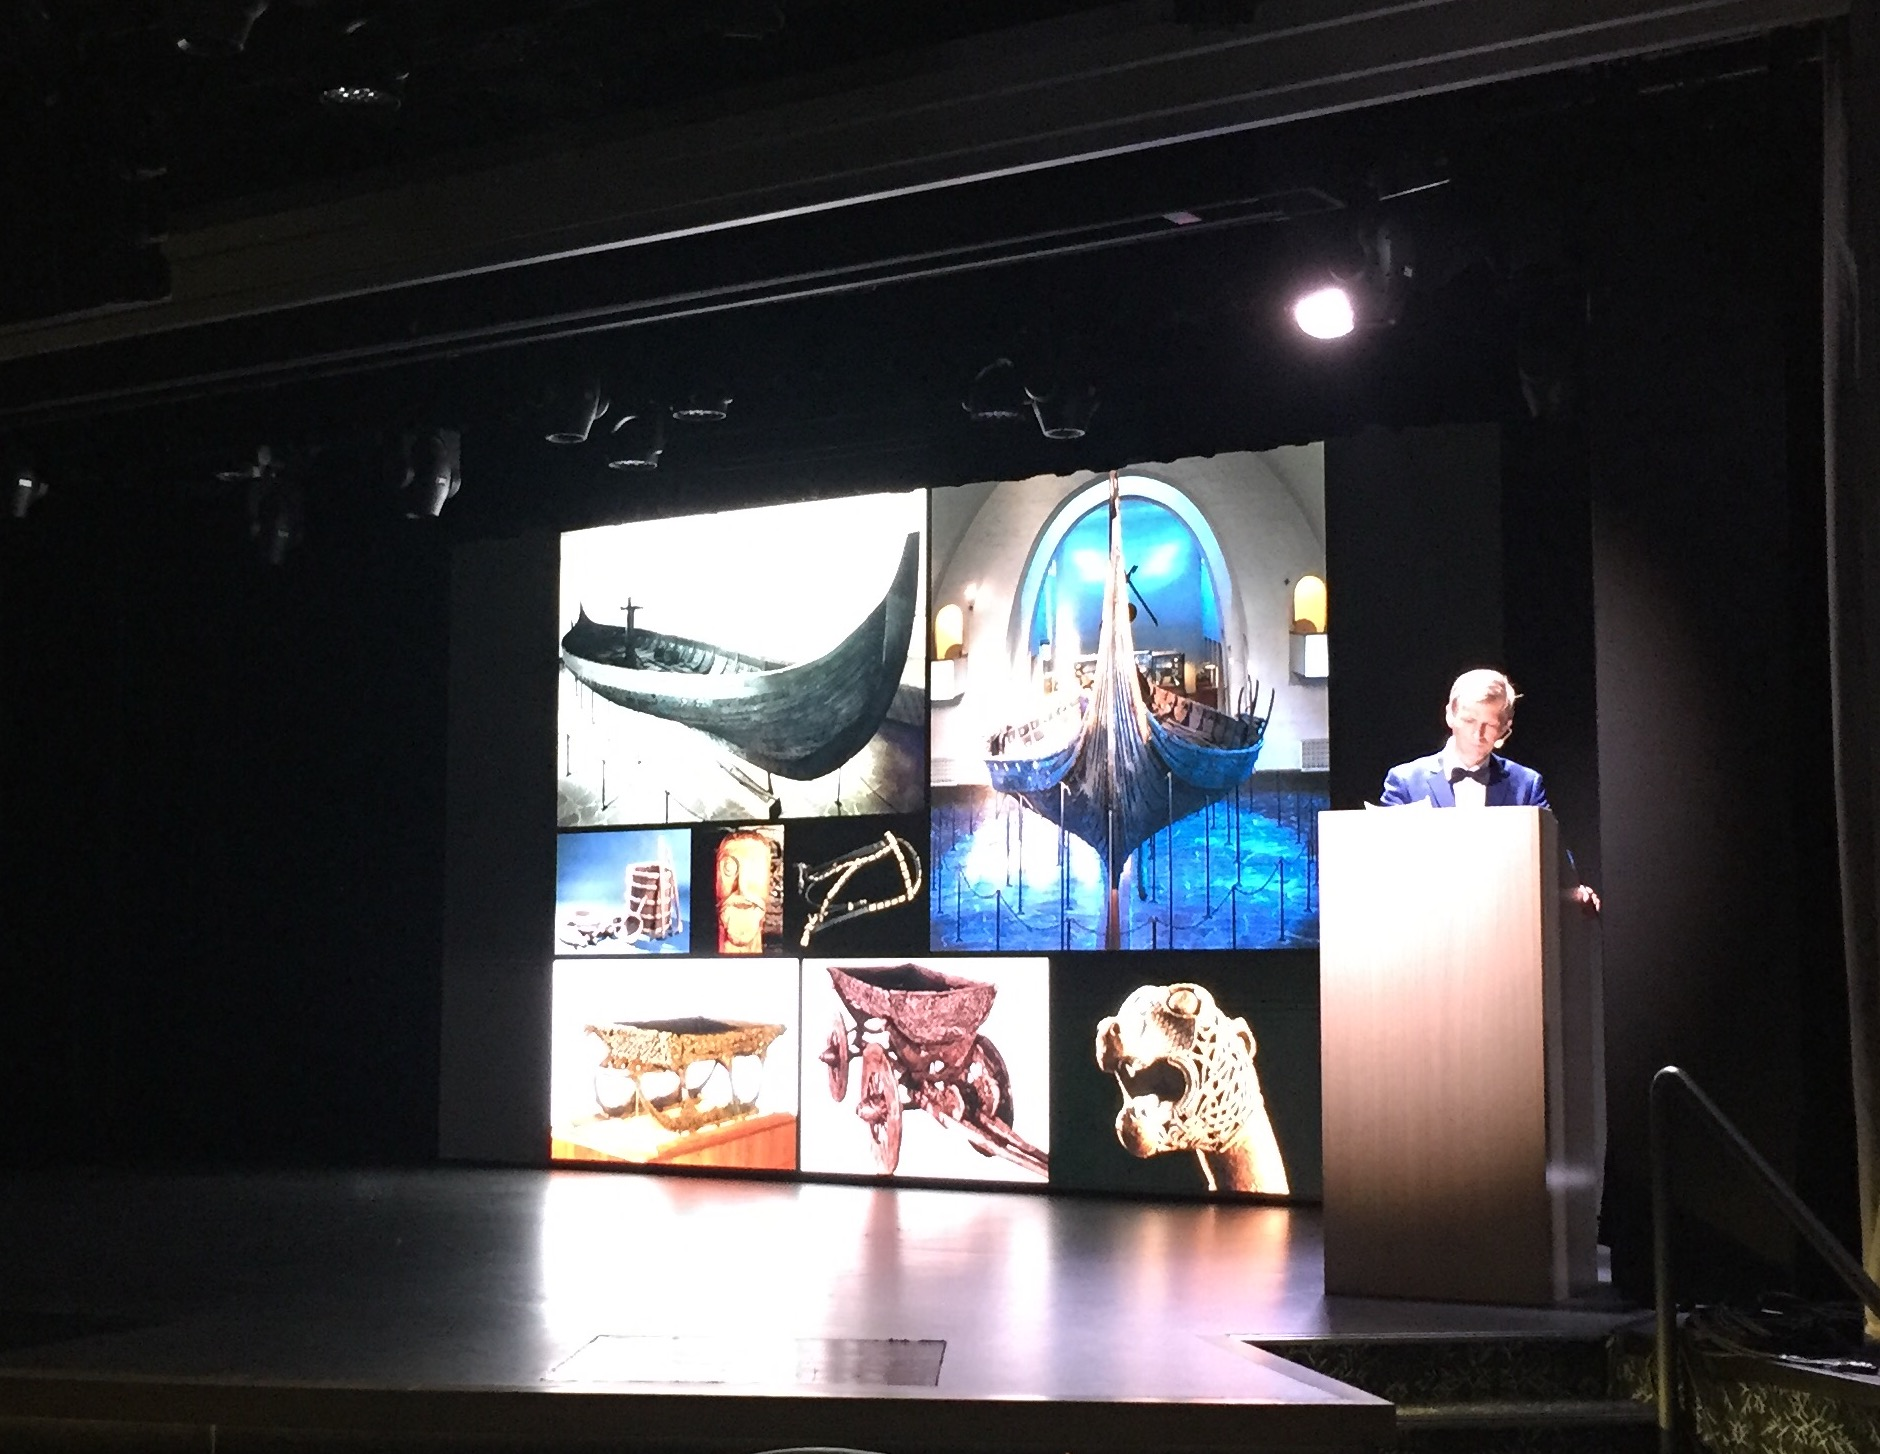 During my Viking Orion cruise I attended an interesting lecture on Norse history given by an expert in the subject